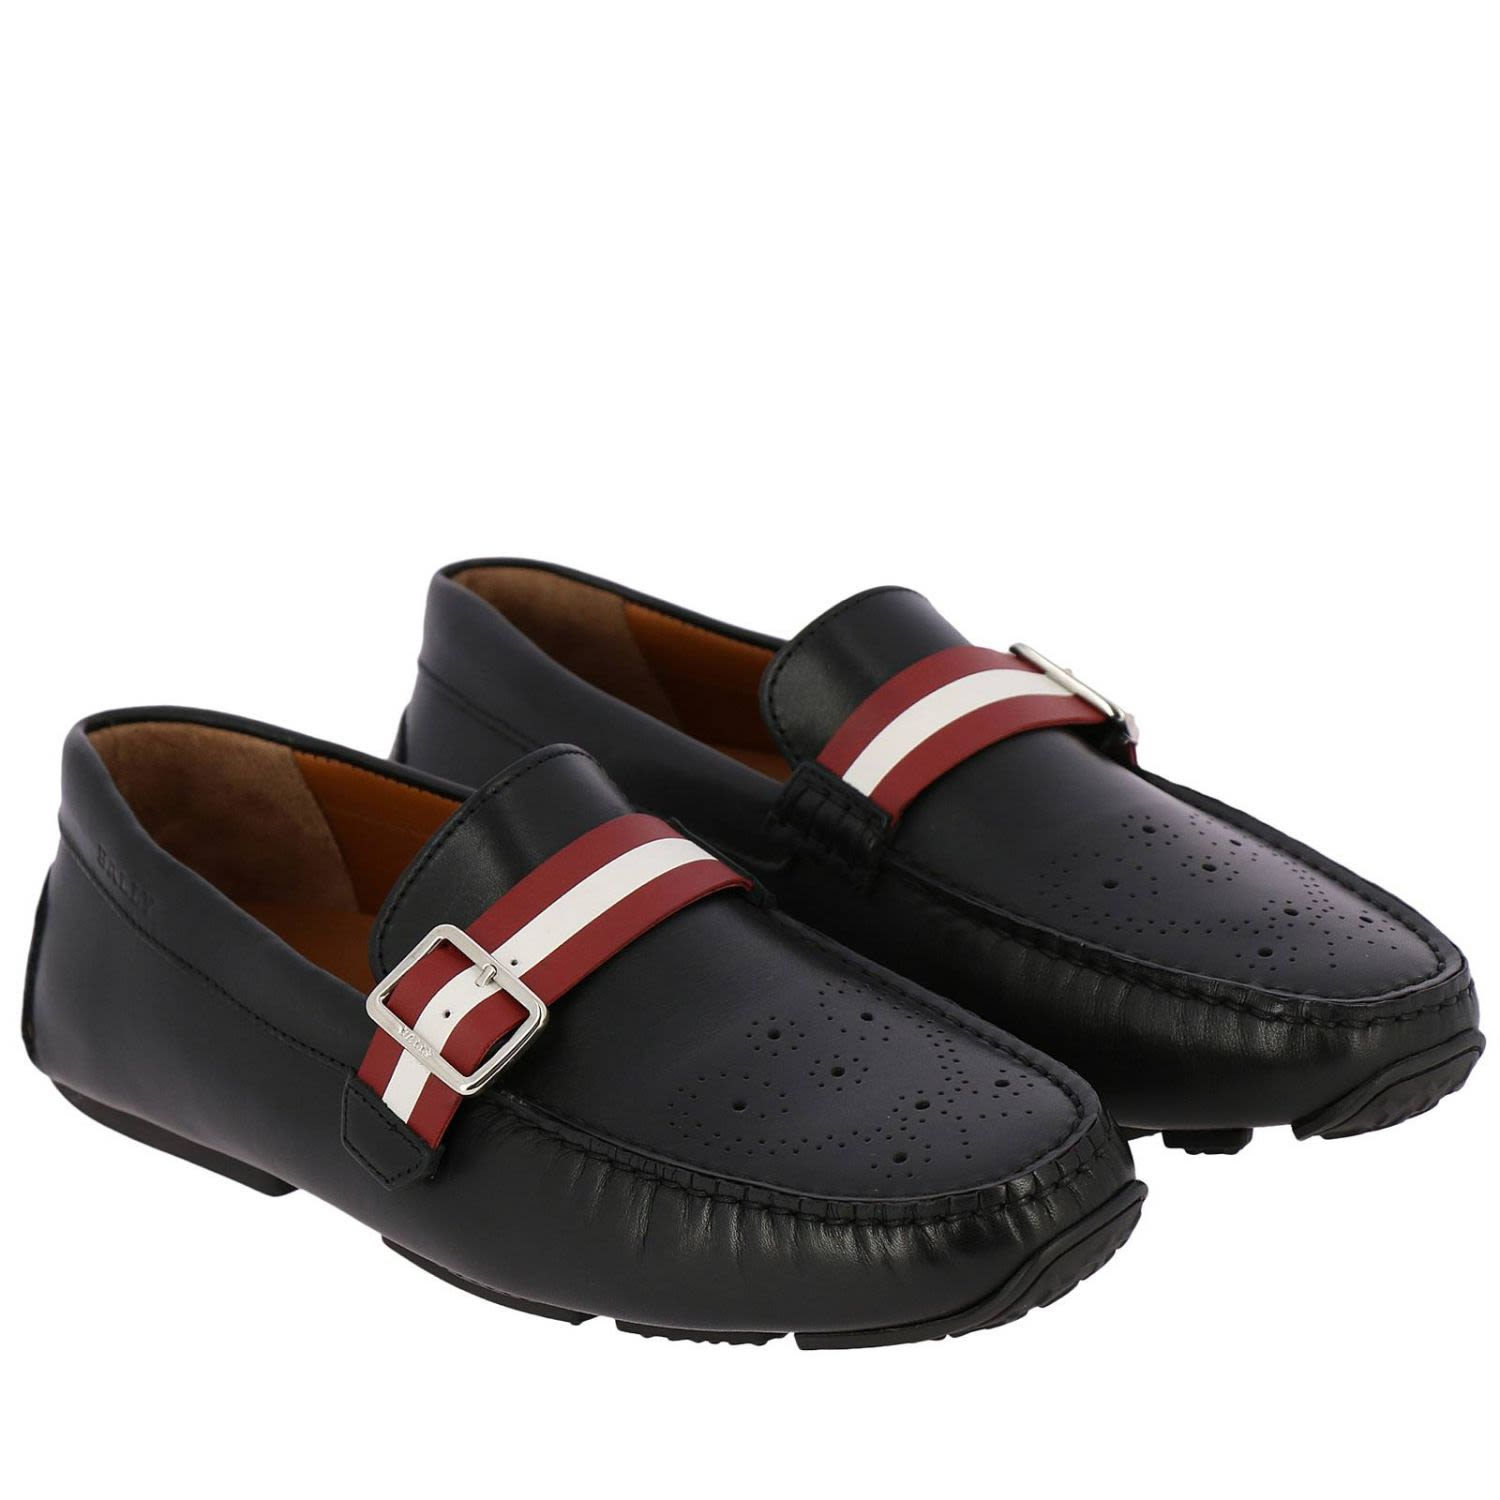 Bally Boat Shoes Price